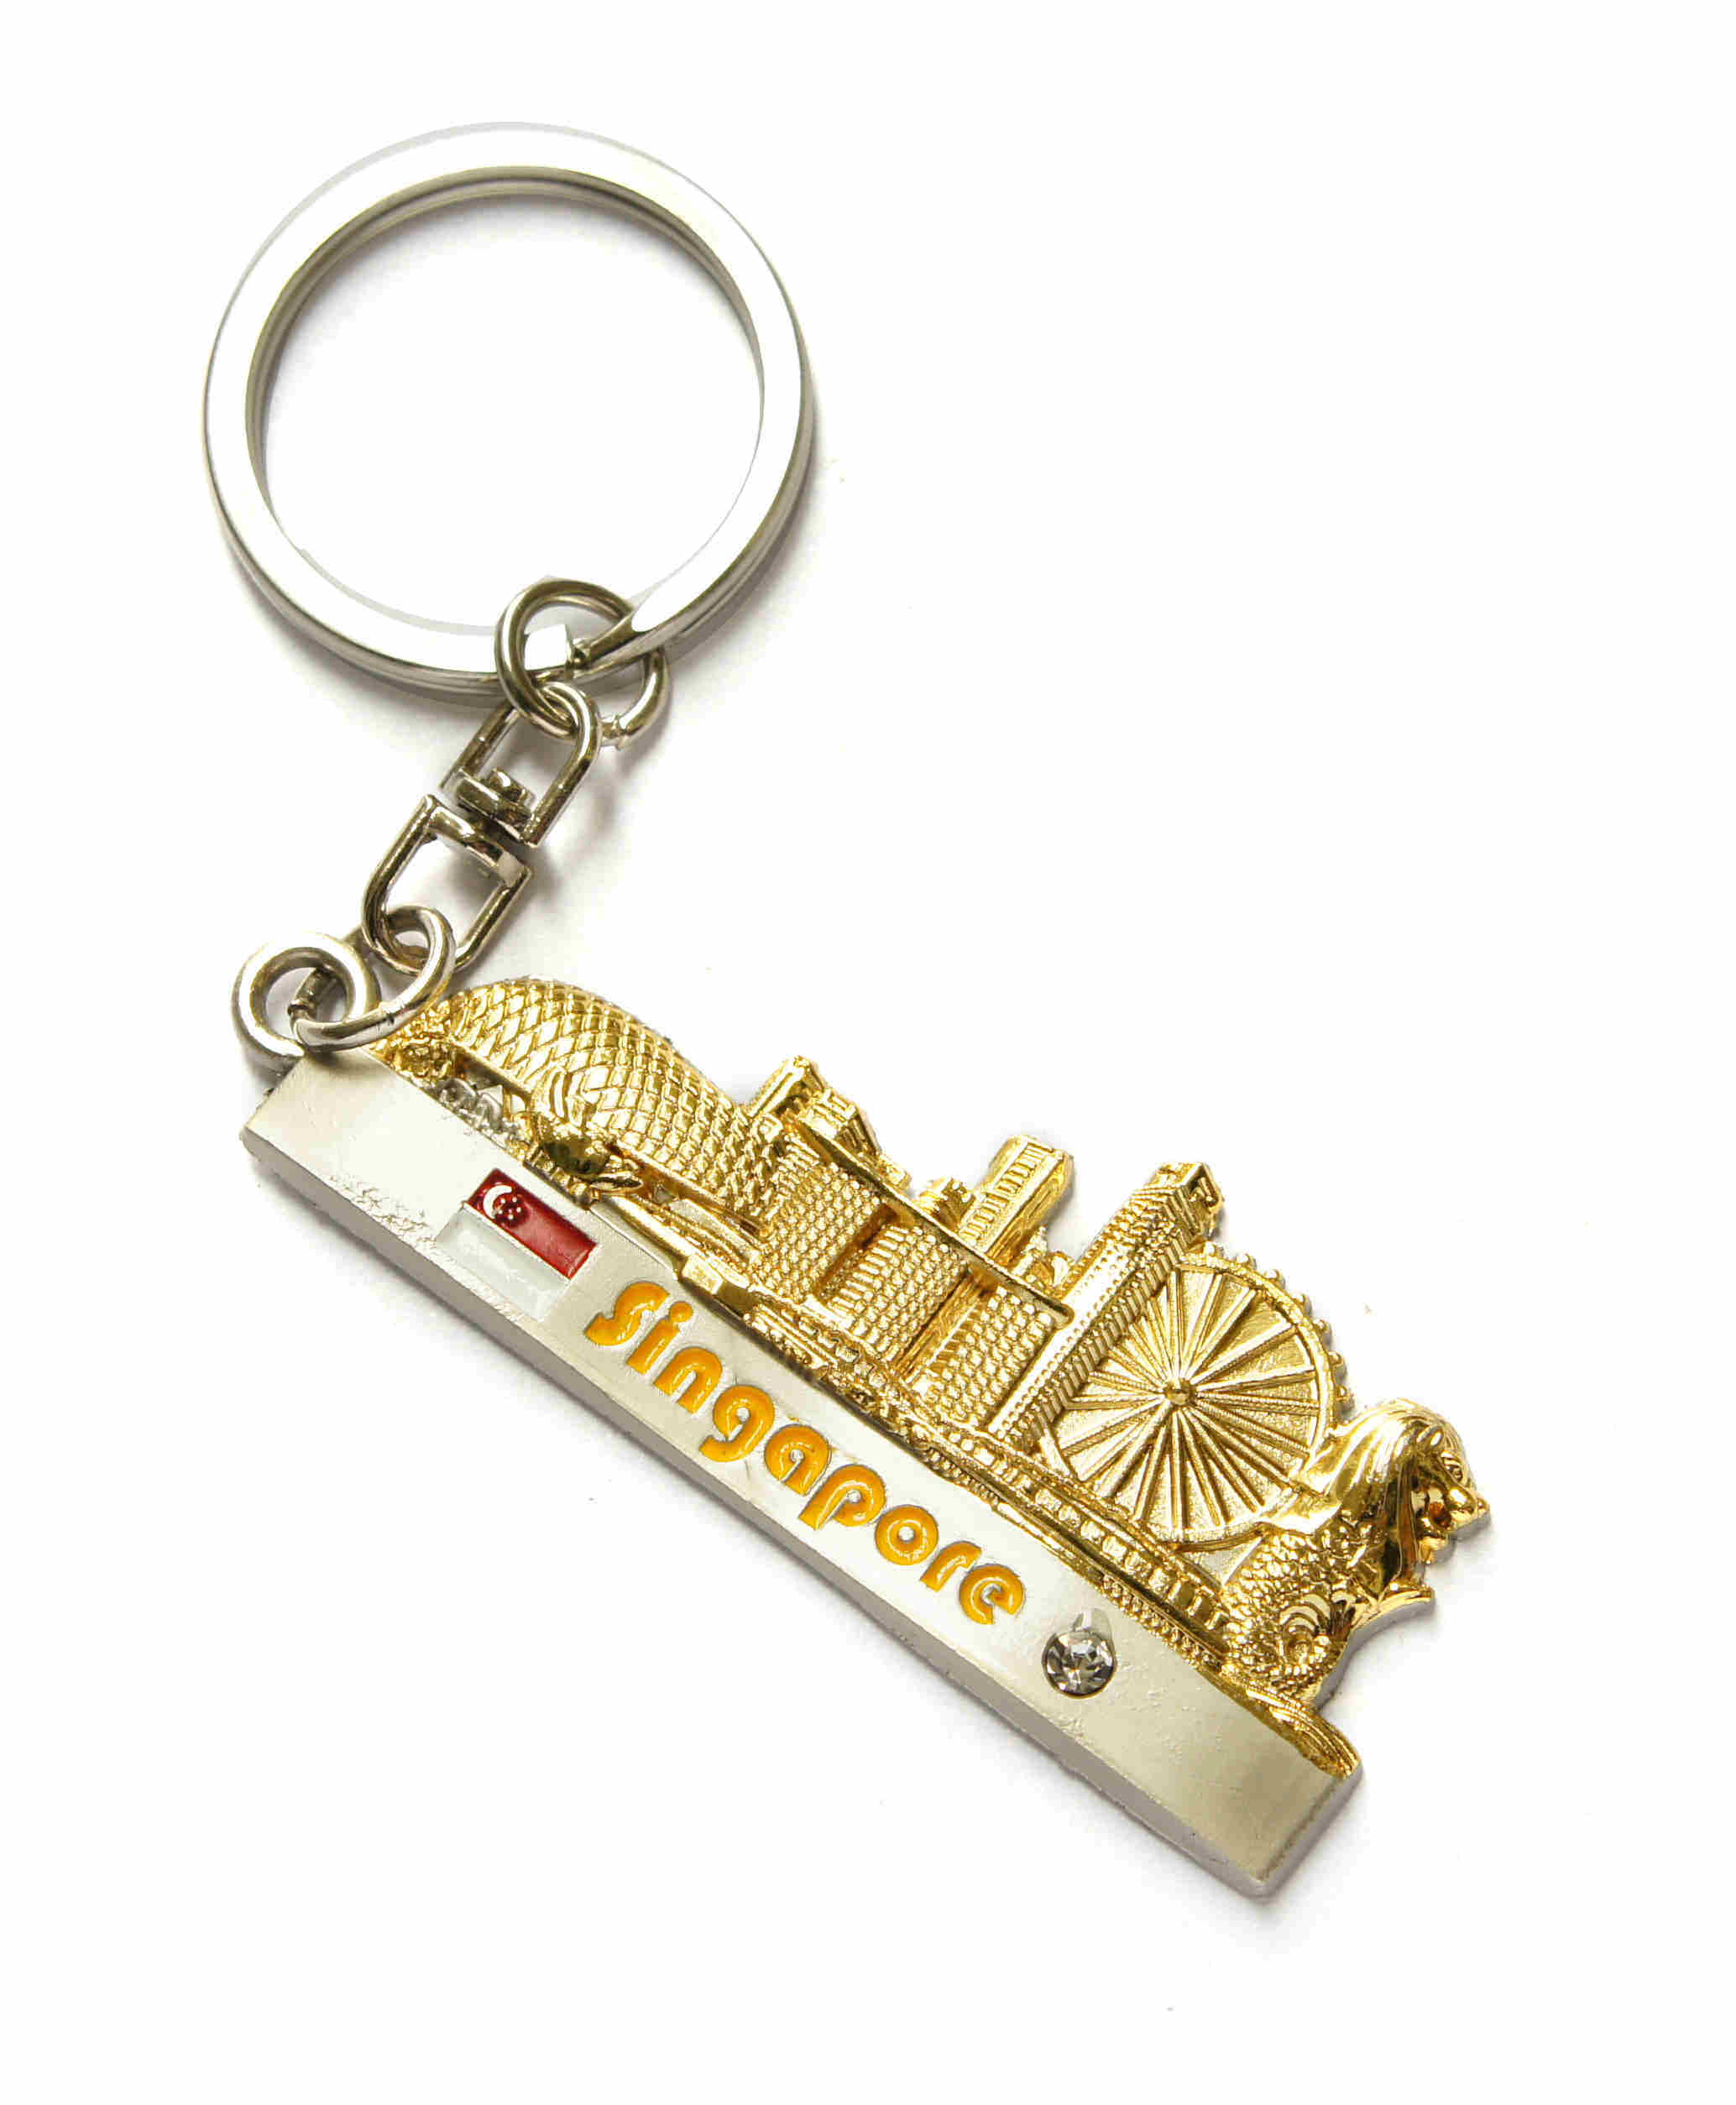 China Tour Souvenir Singapore Gift Merlion Key Chain (K616) - China Keychain 01a9b8ec59cb